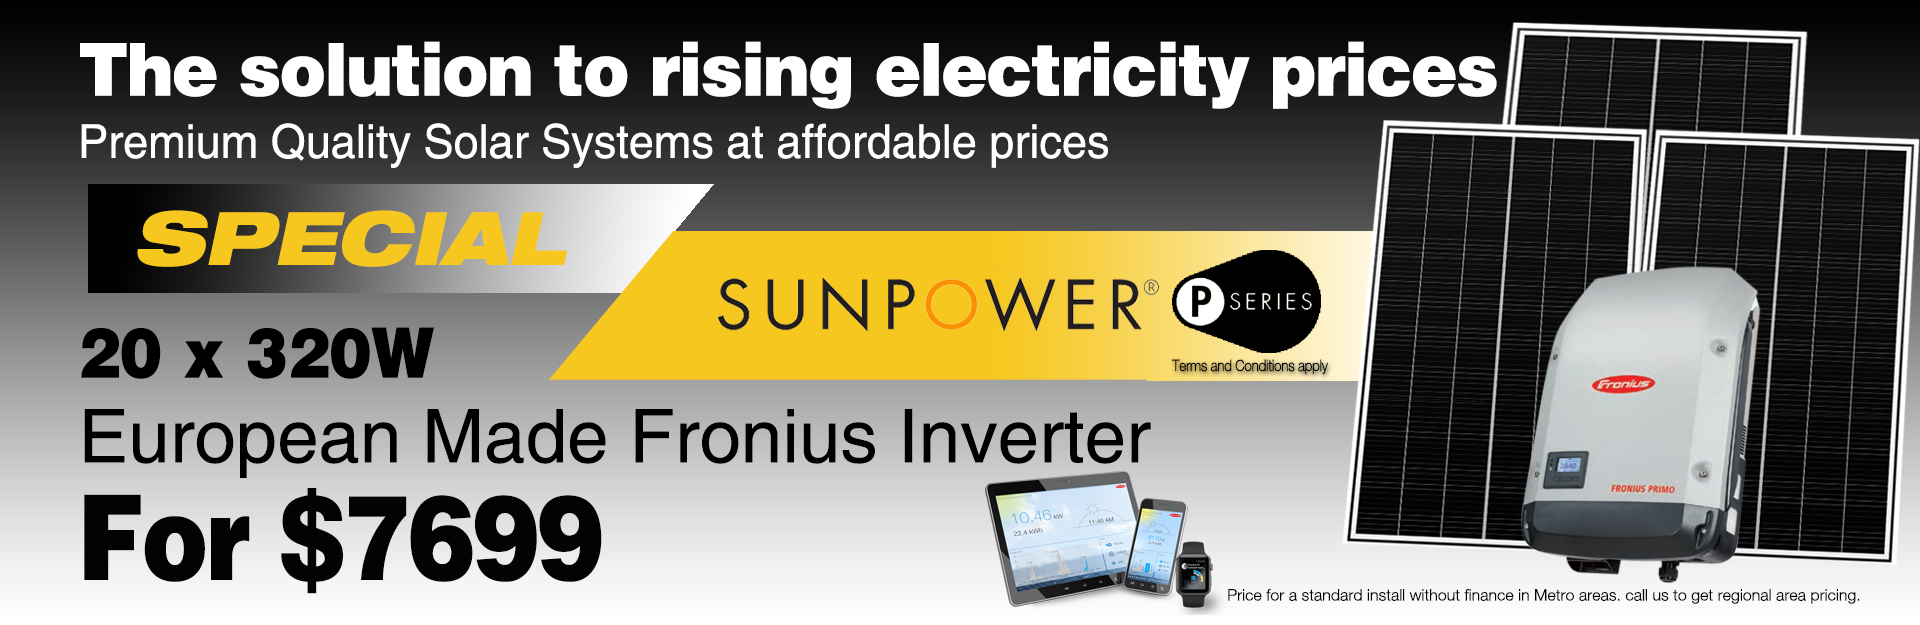 Sunpower special Slider